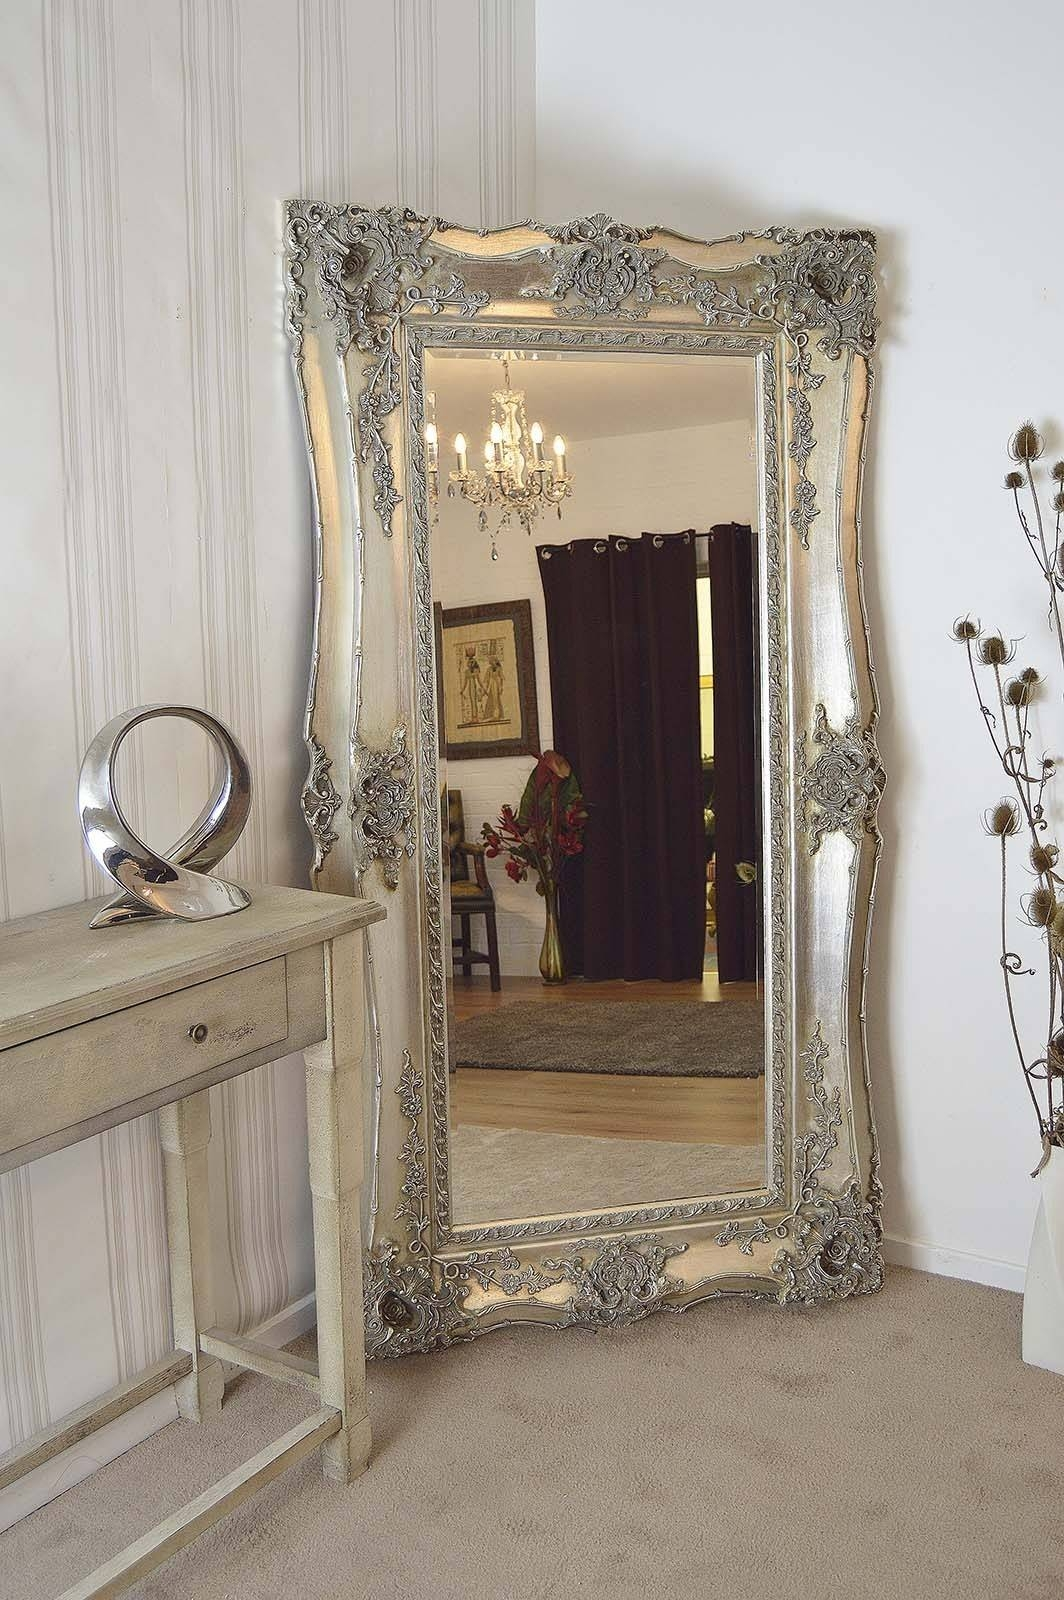 Bedroom Furniture : Large Gold Mirror Free Standing Mirror Wooden with regard to Large Shabby Chic Mirrors (Image 2 of 25)